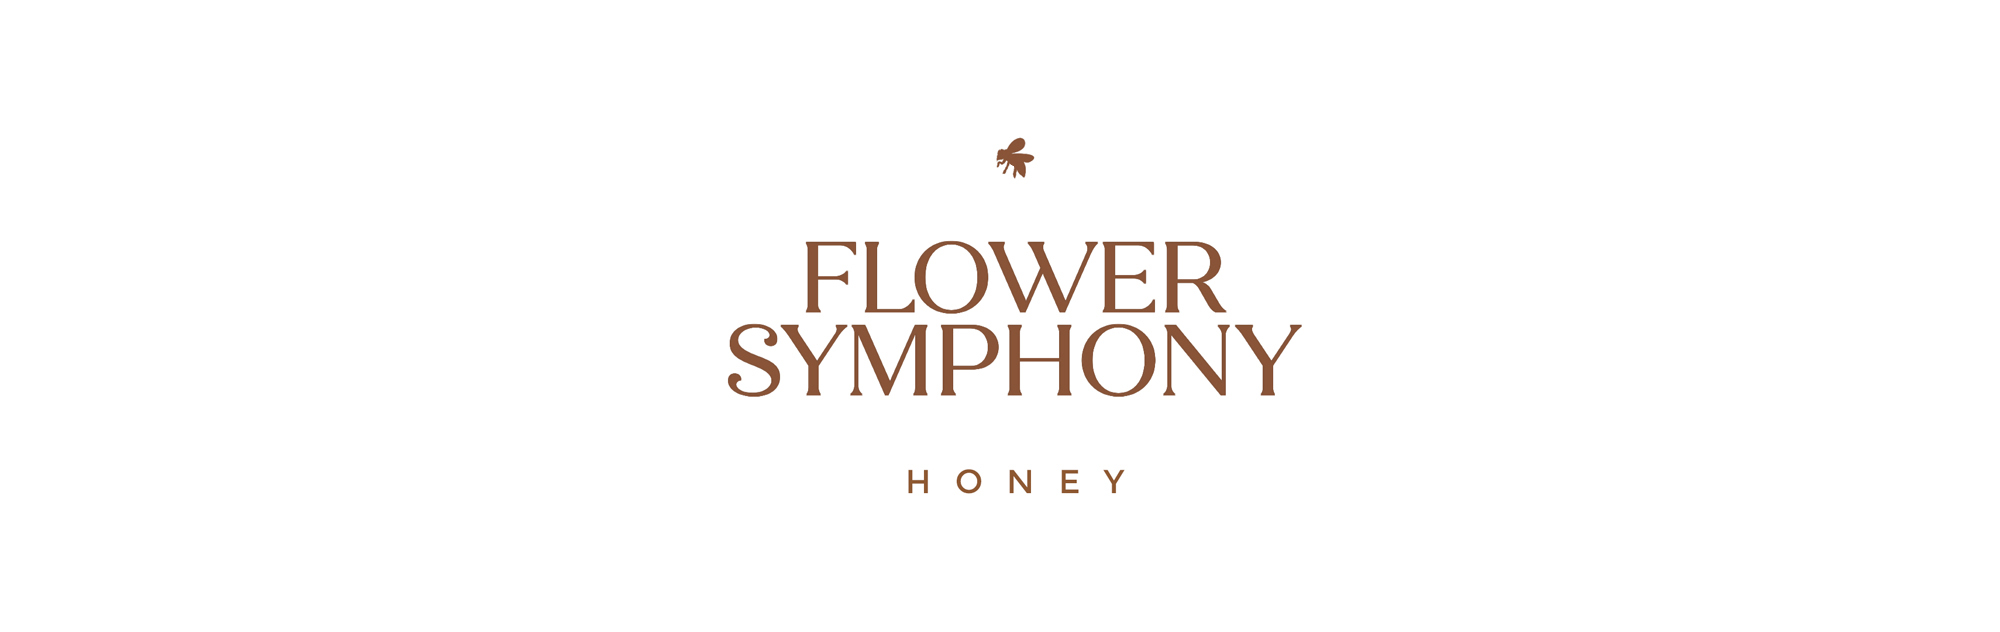 Honey Flower Symphony logo